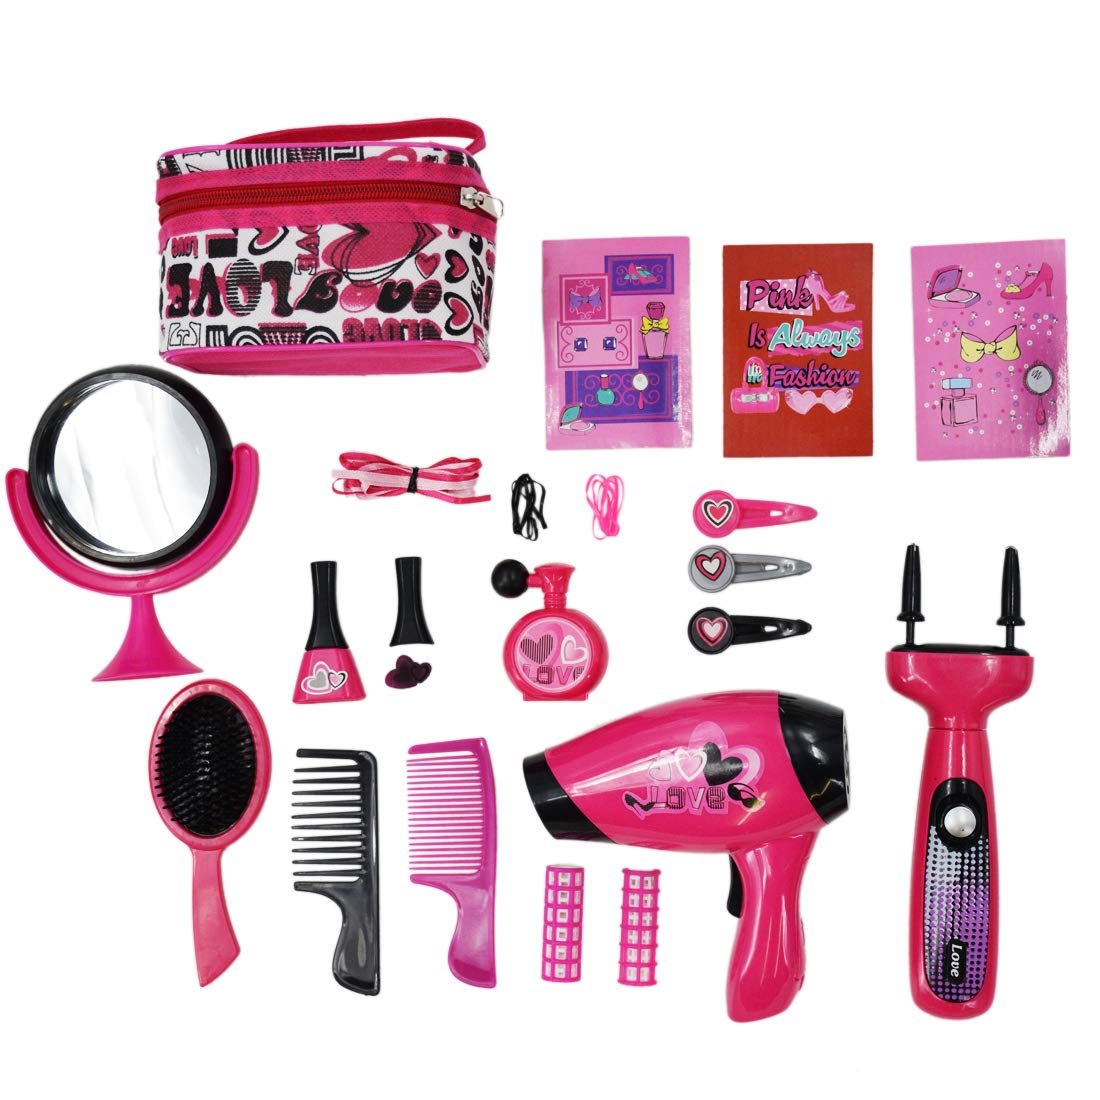 deAO Hairdressing and Vanity Bag Beauty Set Girls Styling Pretend Makeup Accessories Playset Including Braiding Machine and Hairdryer by deAO